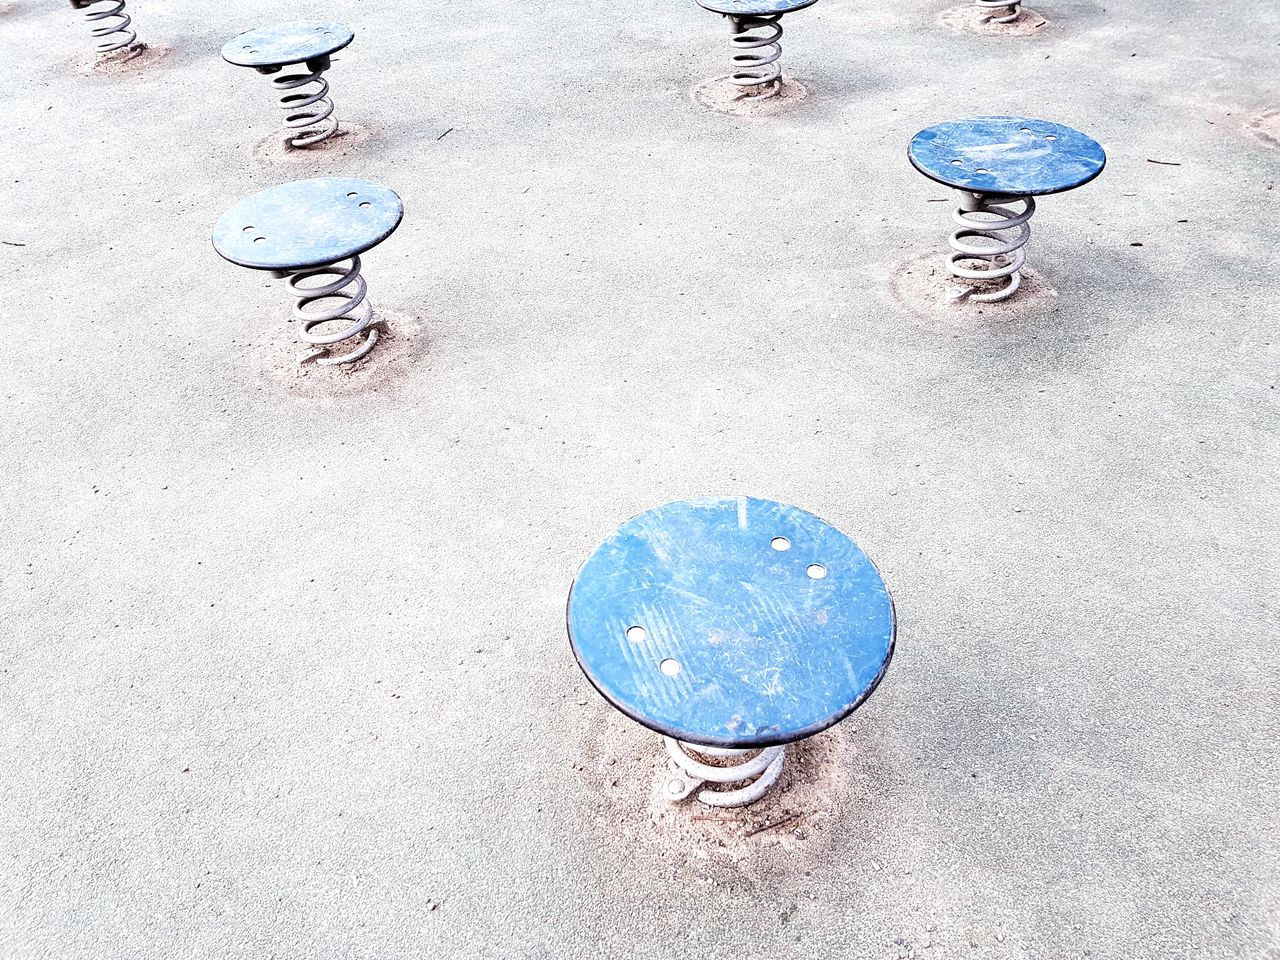 high angle view, circle, playground, low section, day, skateboard park, leisure games, outdoors, shoe, childhood, outdoor play equipment, sport, playing, one person, real people, men, hopscotch, people